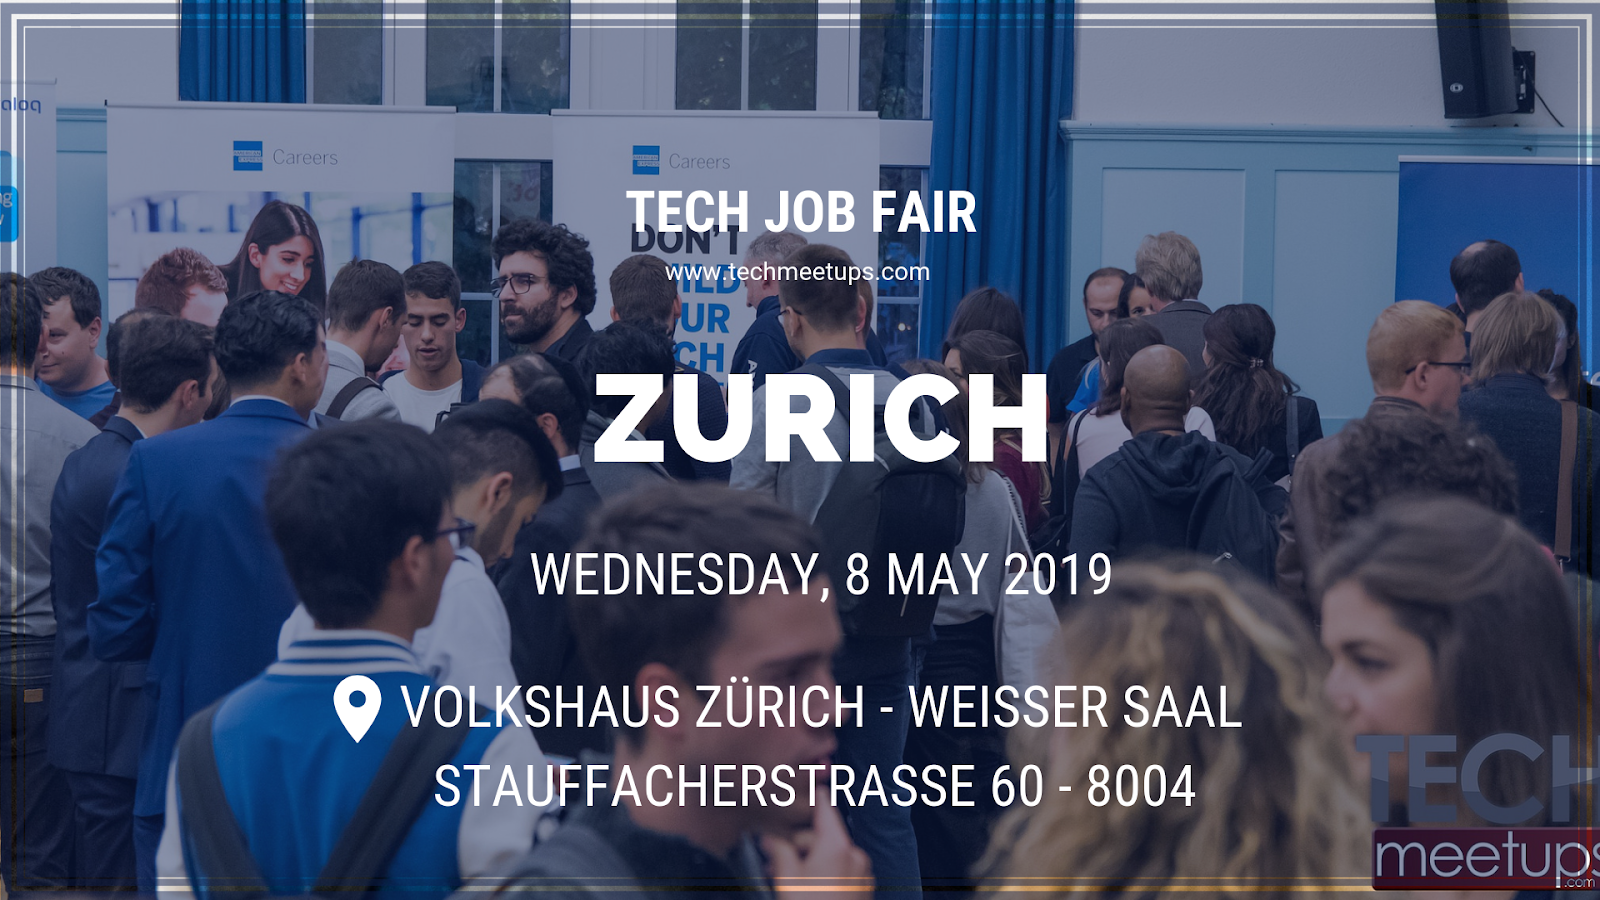 join zurich tech job fair